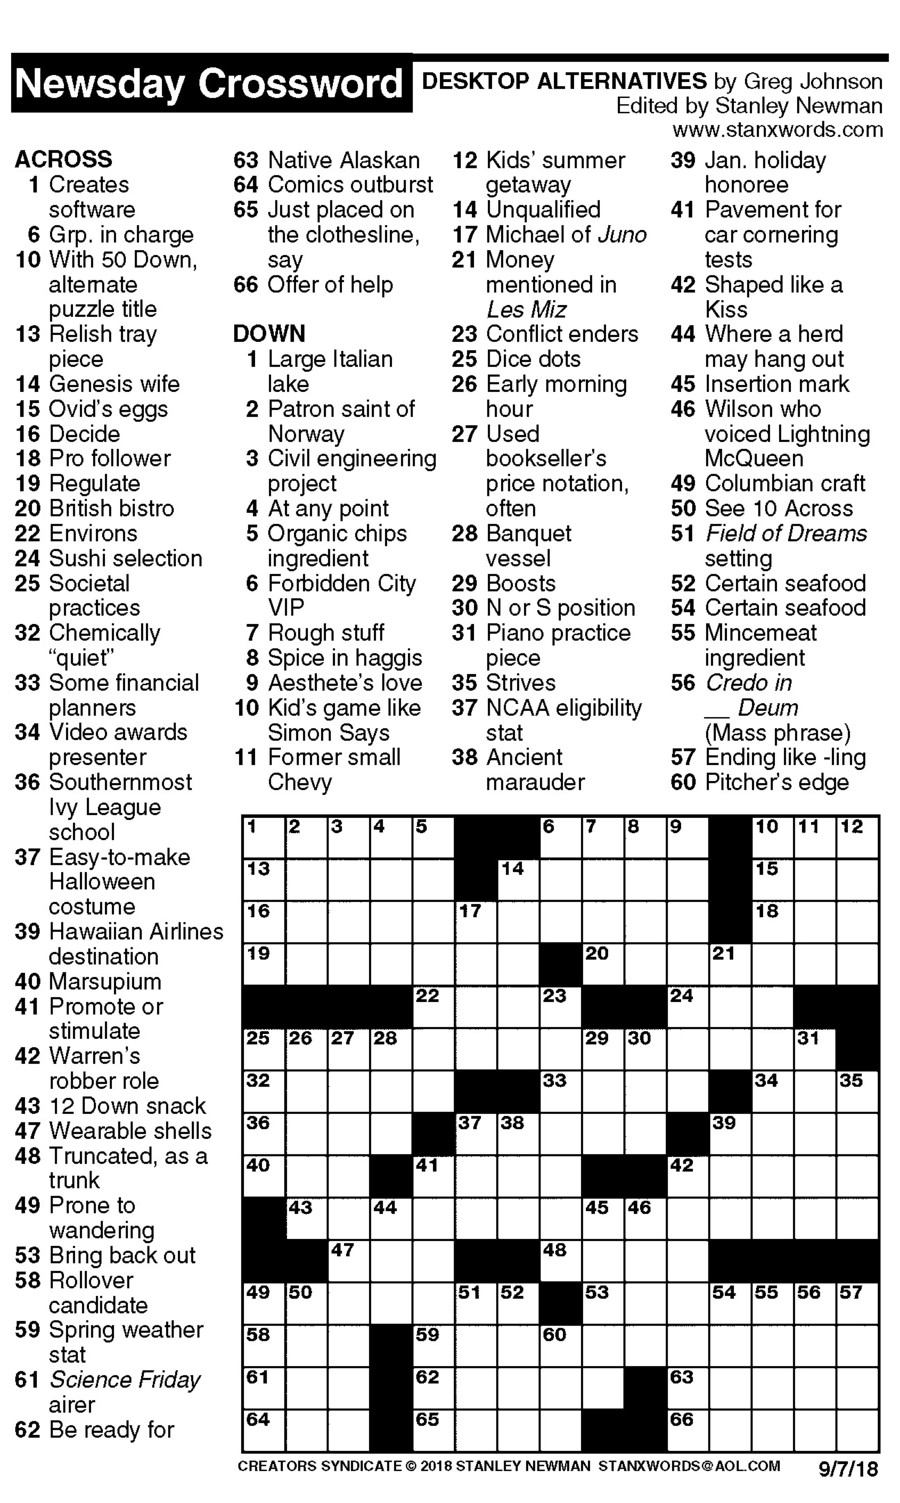 Newsday Crossword Puzzle for Sep 07, 2018